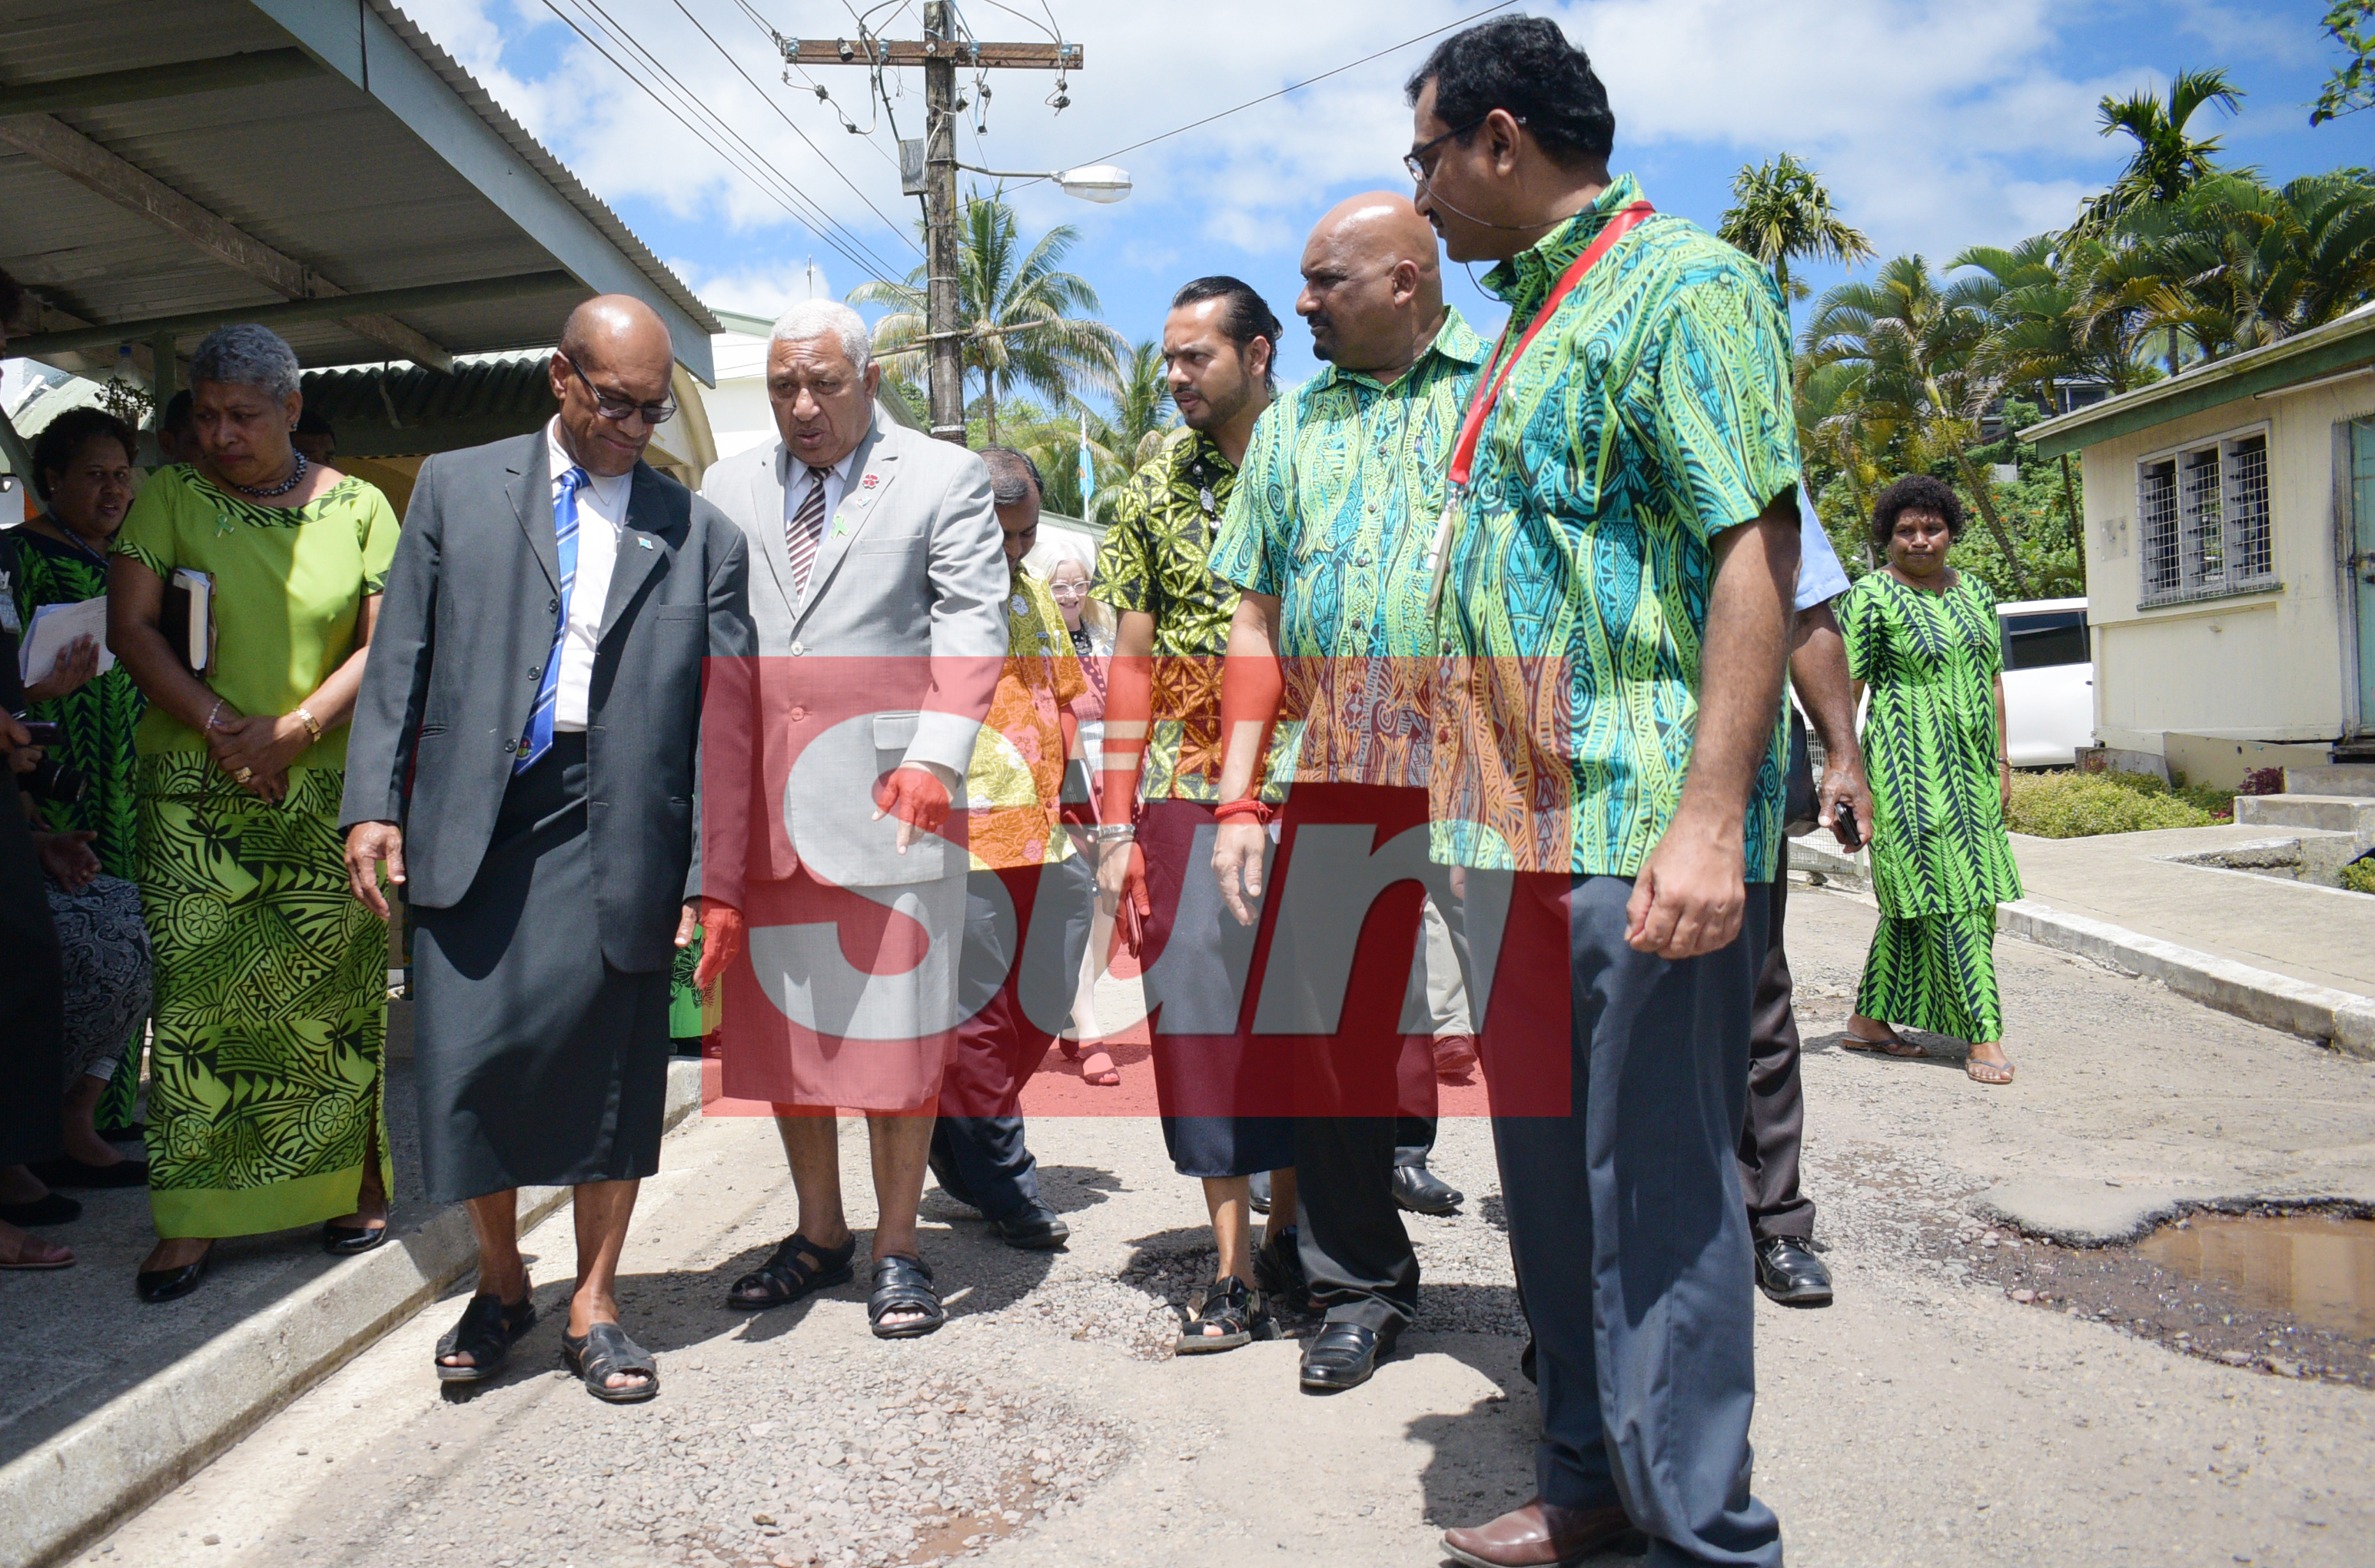 Prime Minister Voreqe Bainimarama discuss the road condition at St. Giles Hospital with Minister for Infrastructure and Transport Jone Usamate after opening the Alcohol and Drug unit (AOD Unit) at the hospital on November 6, 2019. Photo: Ronald Kumar.